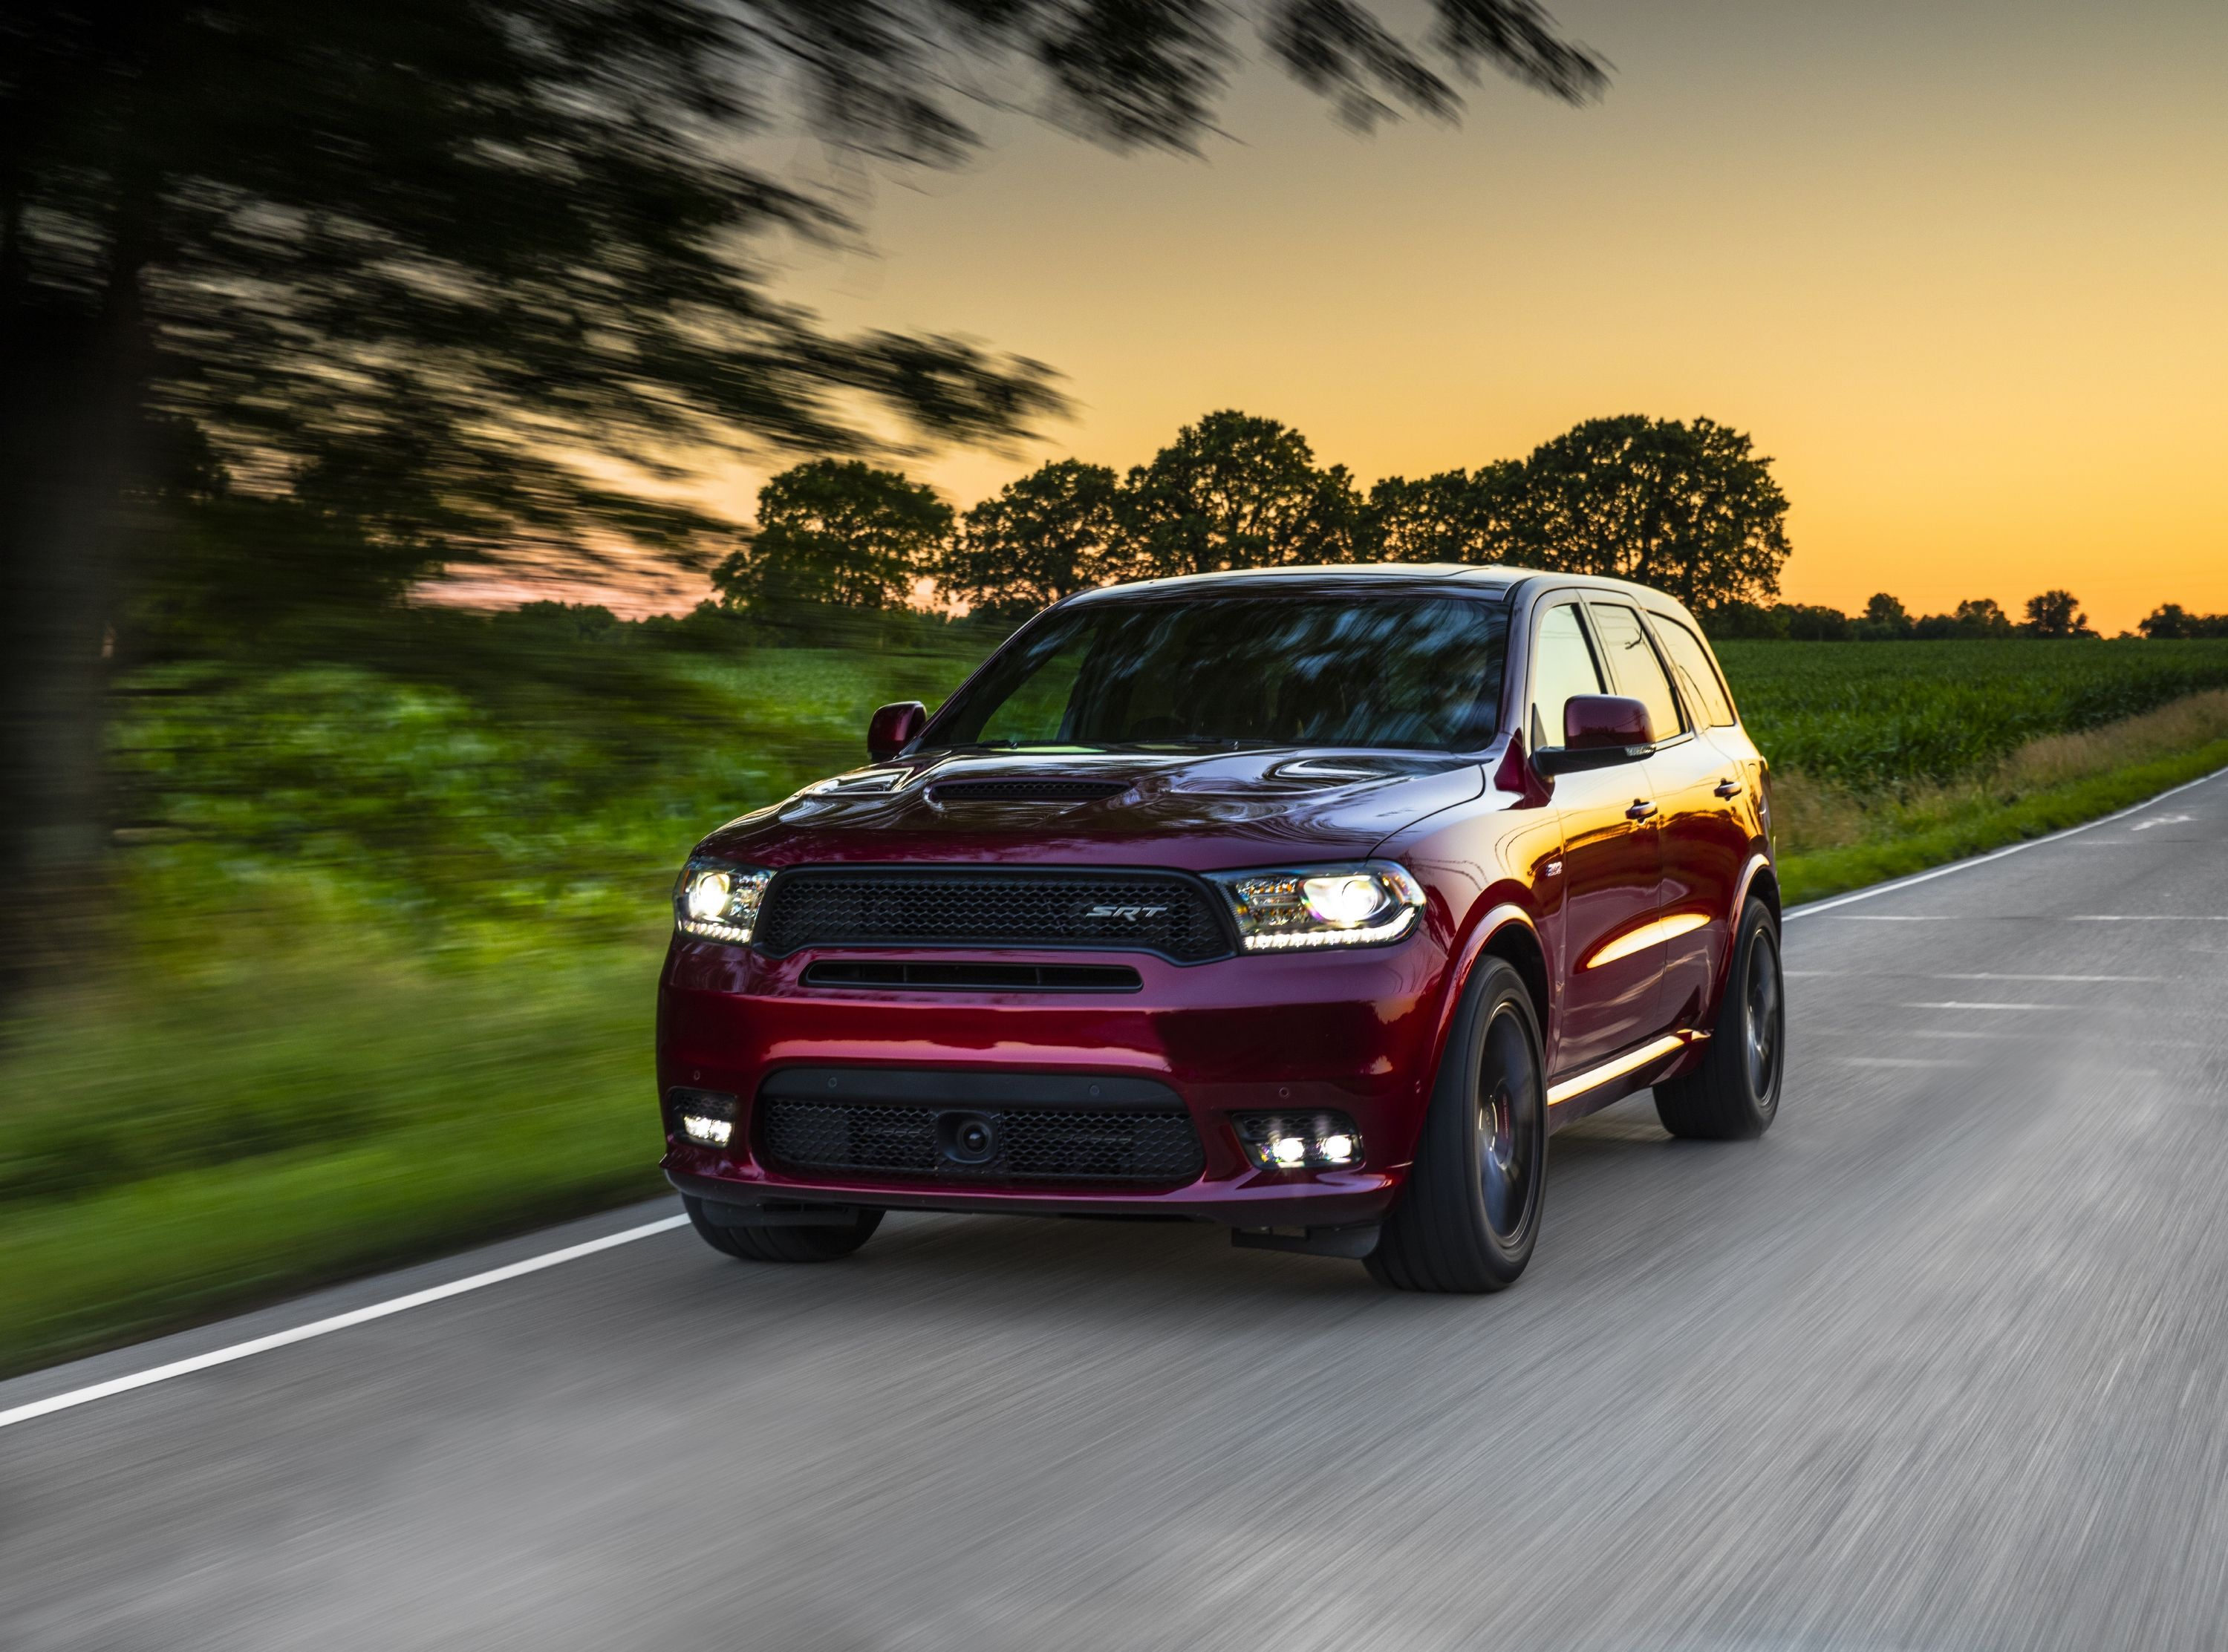 2020 Dodge Durango Srt Review Pricing And Specs